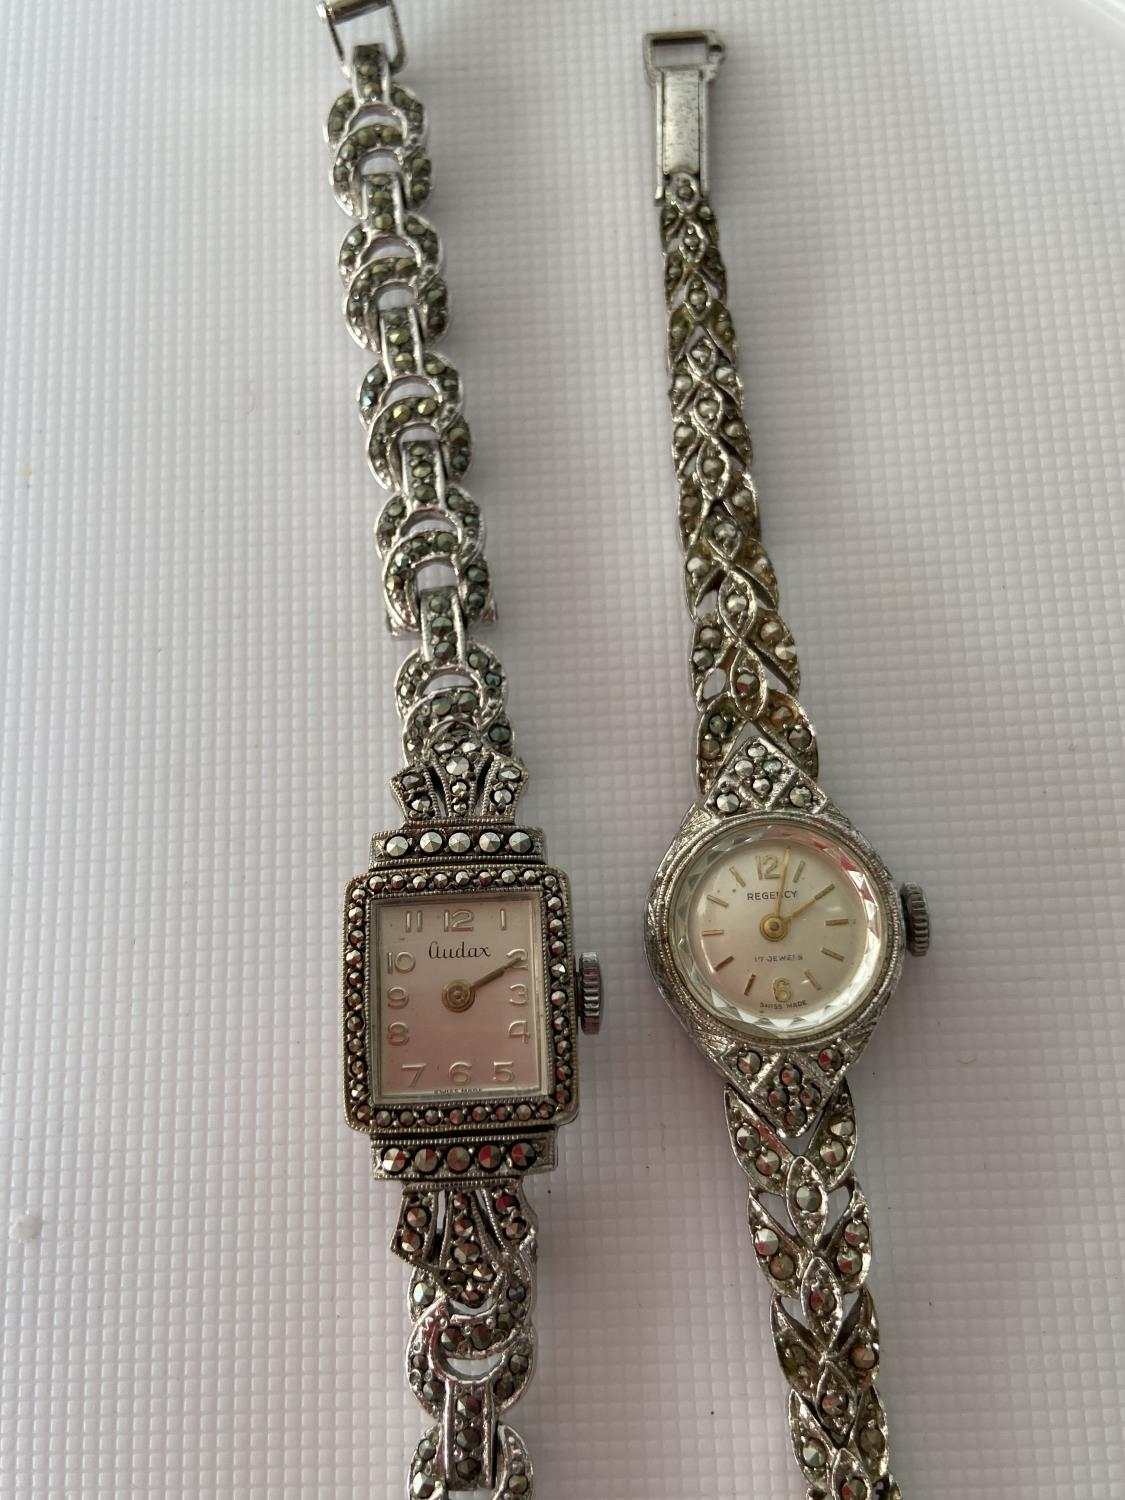 A vintage ladies 925 silver wrist watch produced by Regency [17 jewel] [working] fitted with - Image 4 of 6